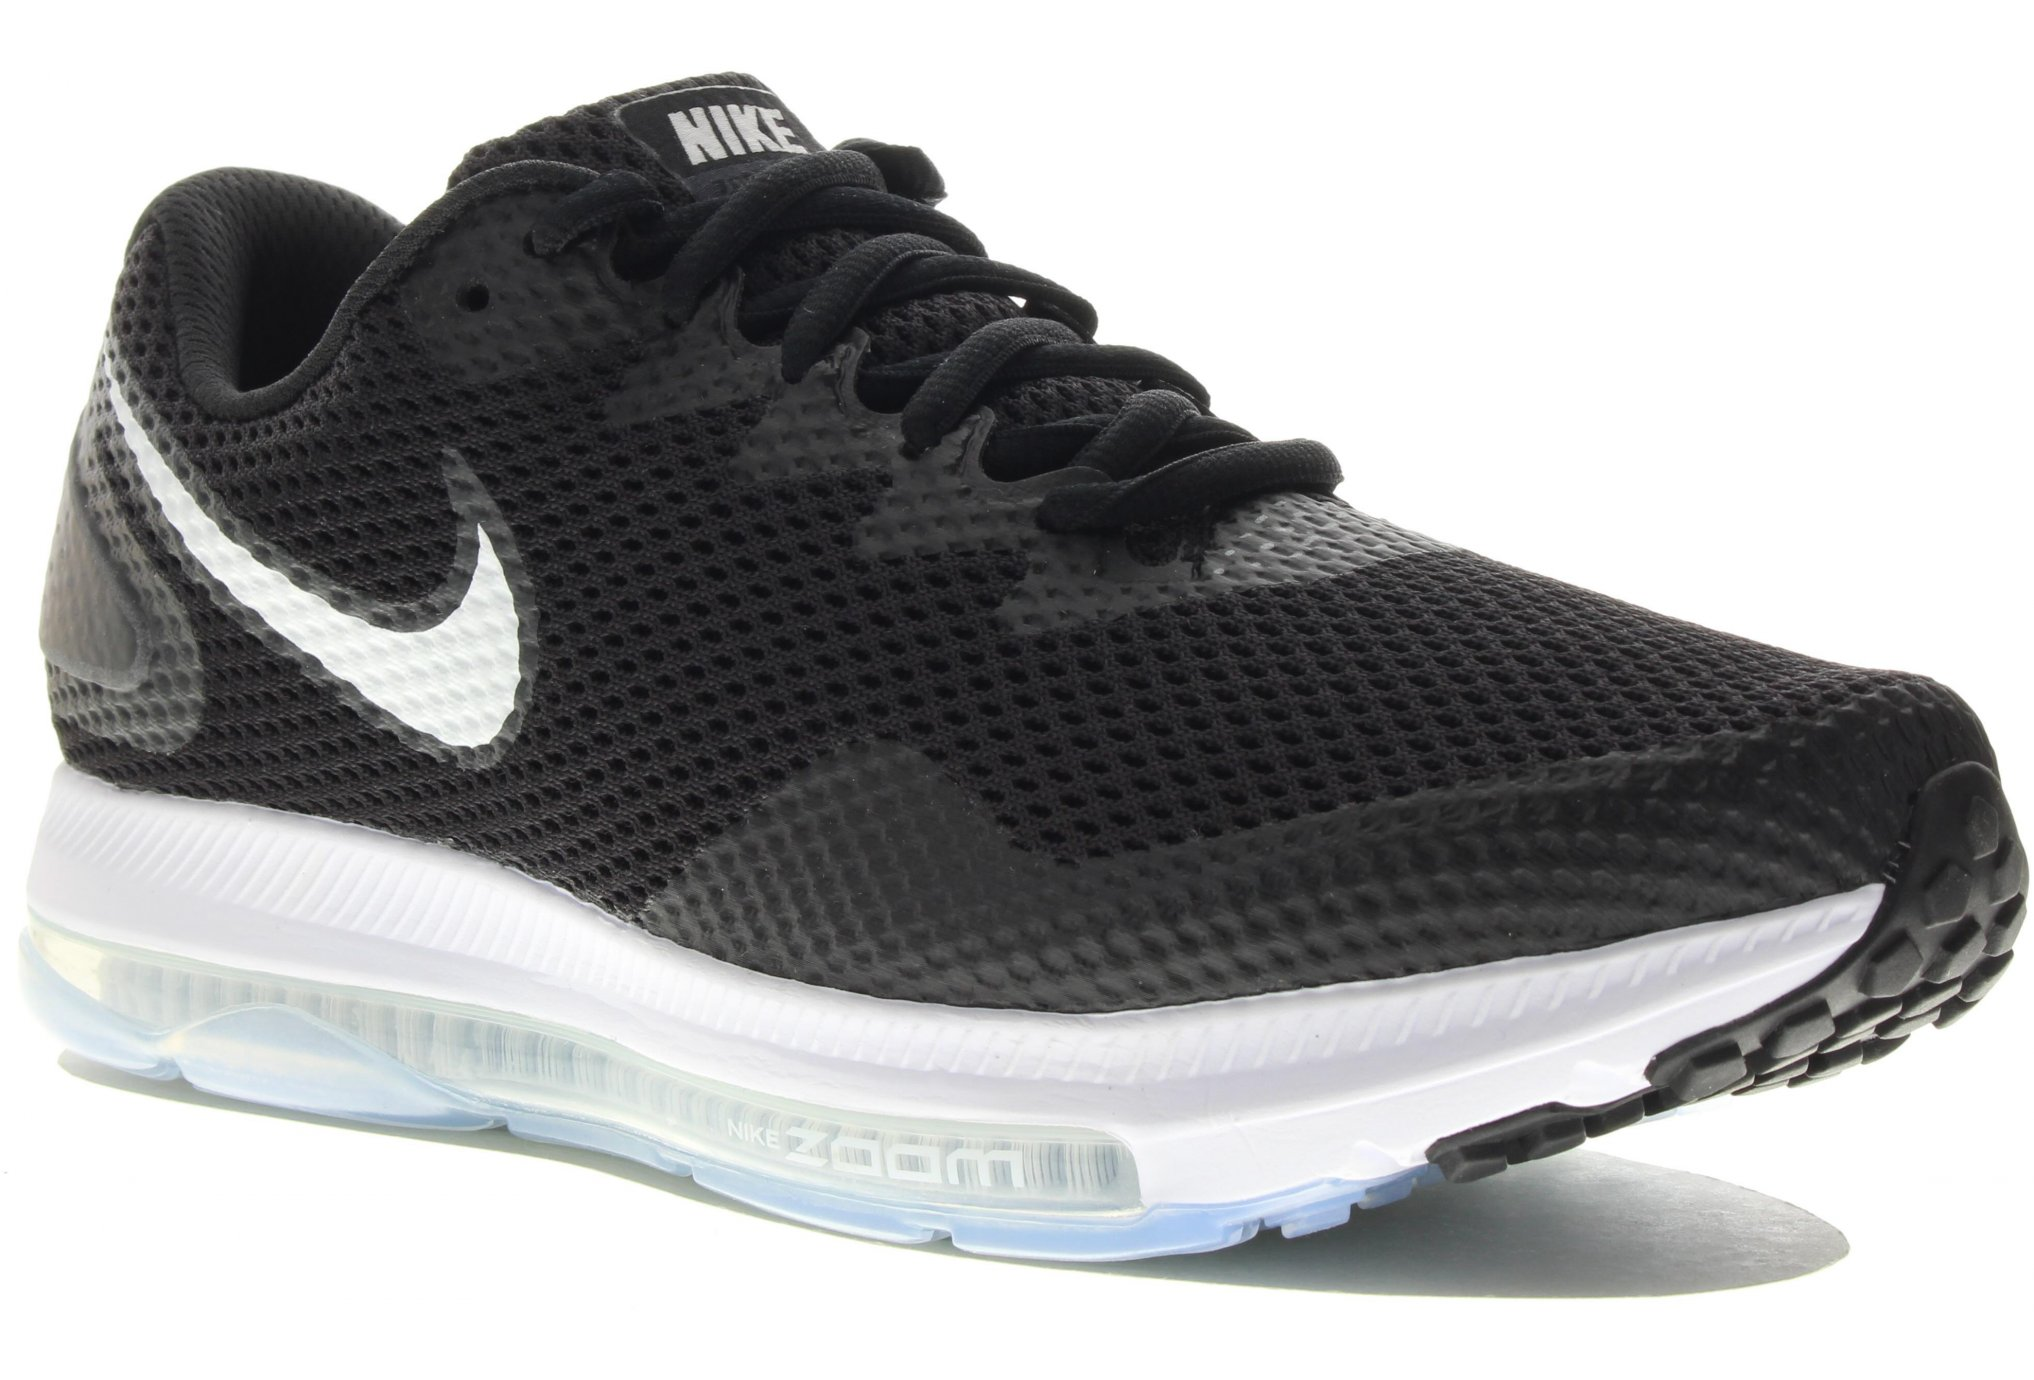 Nike Zoom All Out Low 2 W Chaussures running femme